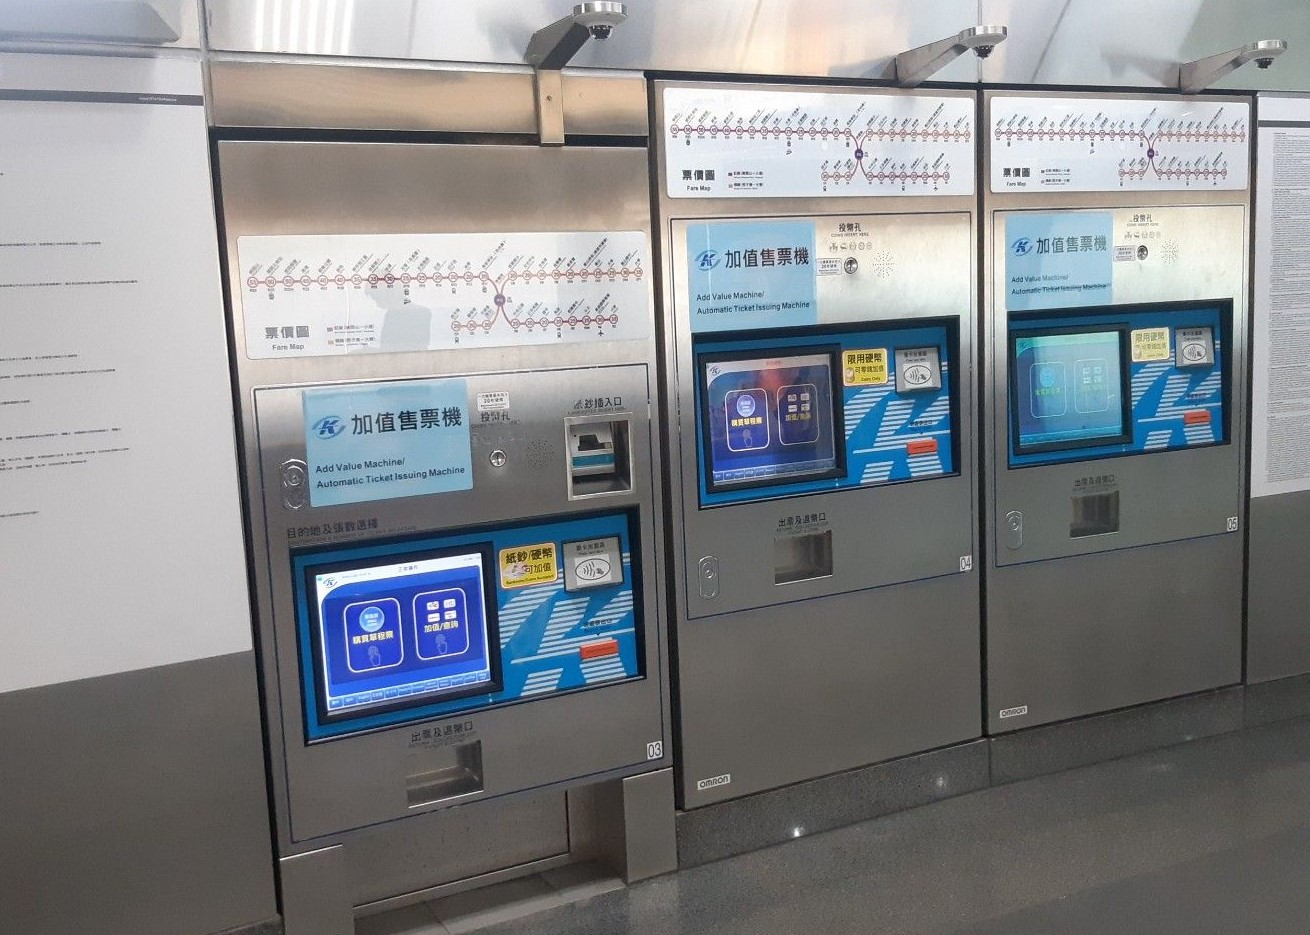 Wheelchair Accessible Add Value/Ticket Vending Machine